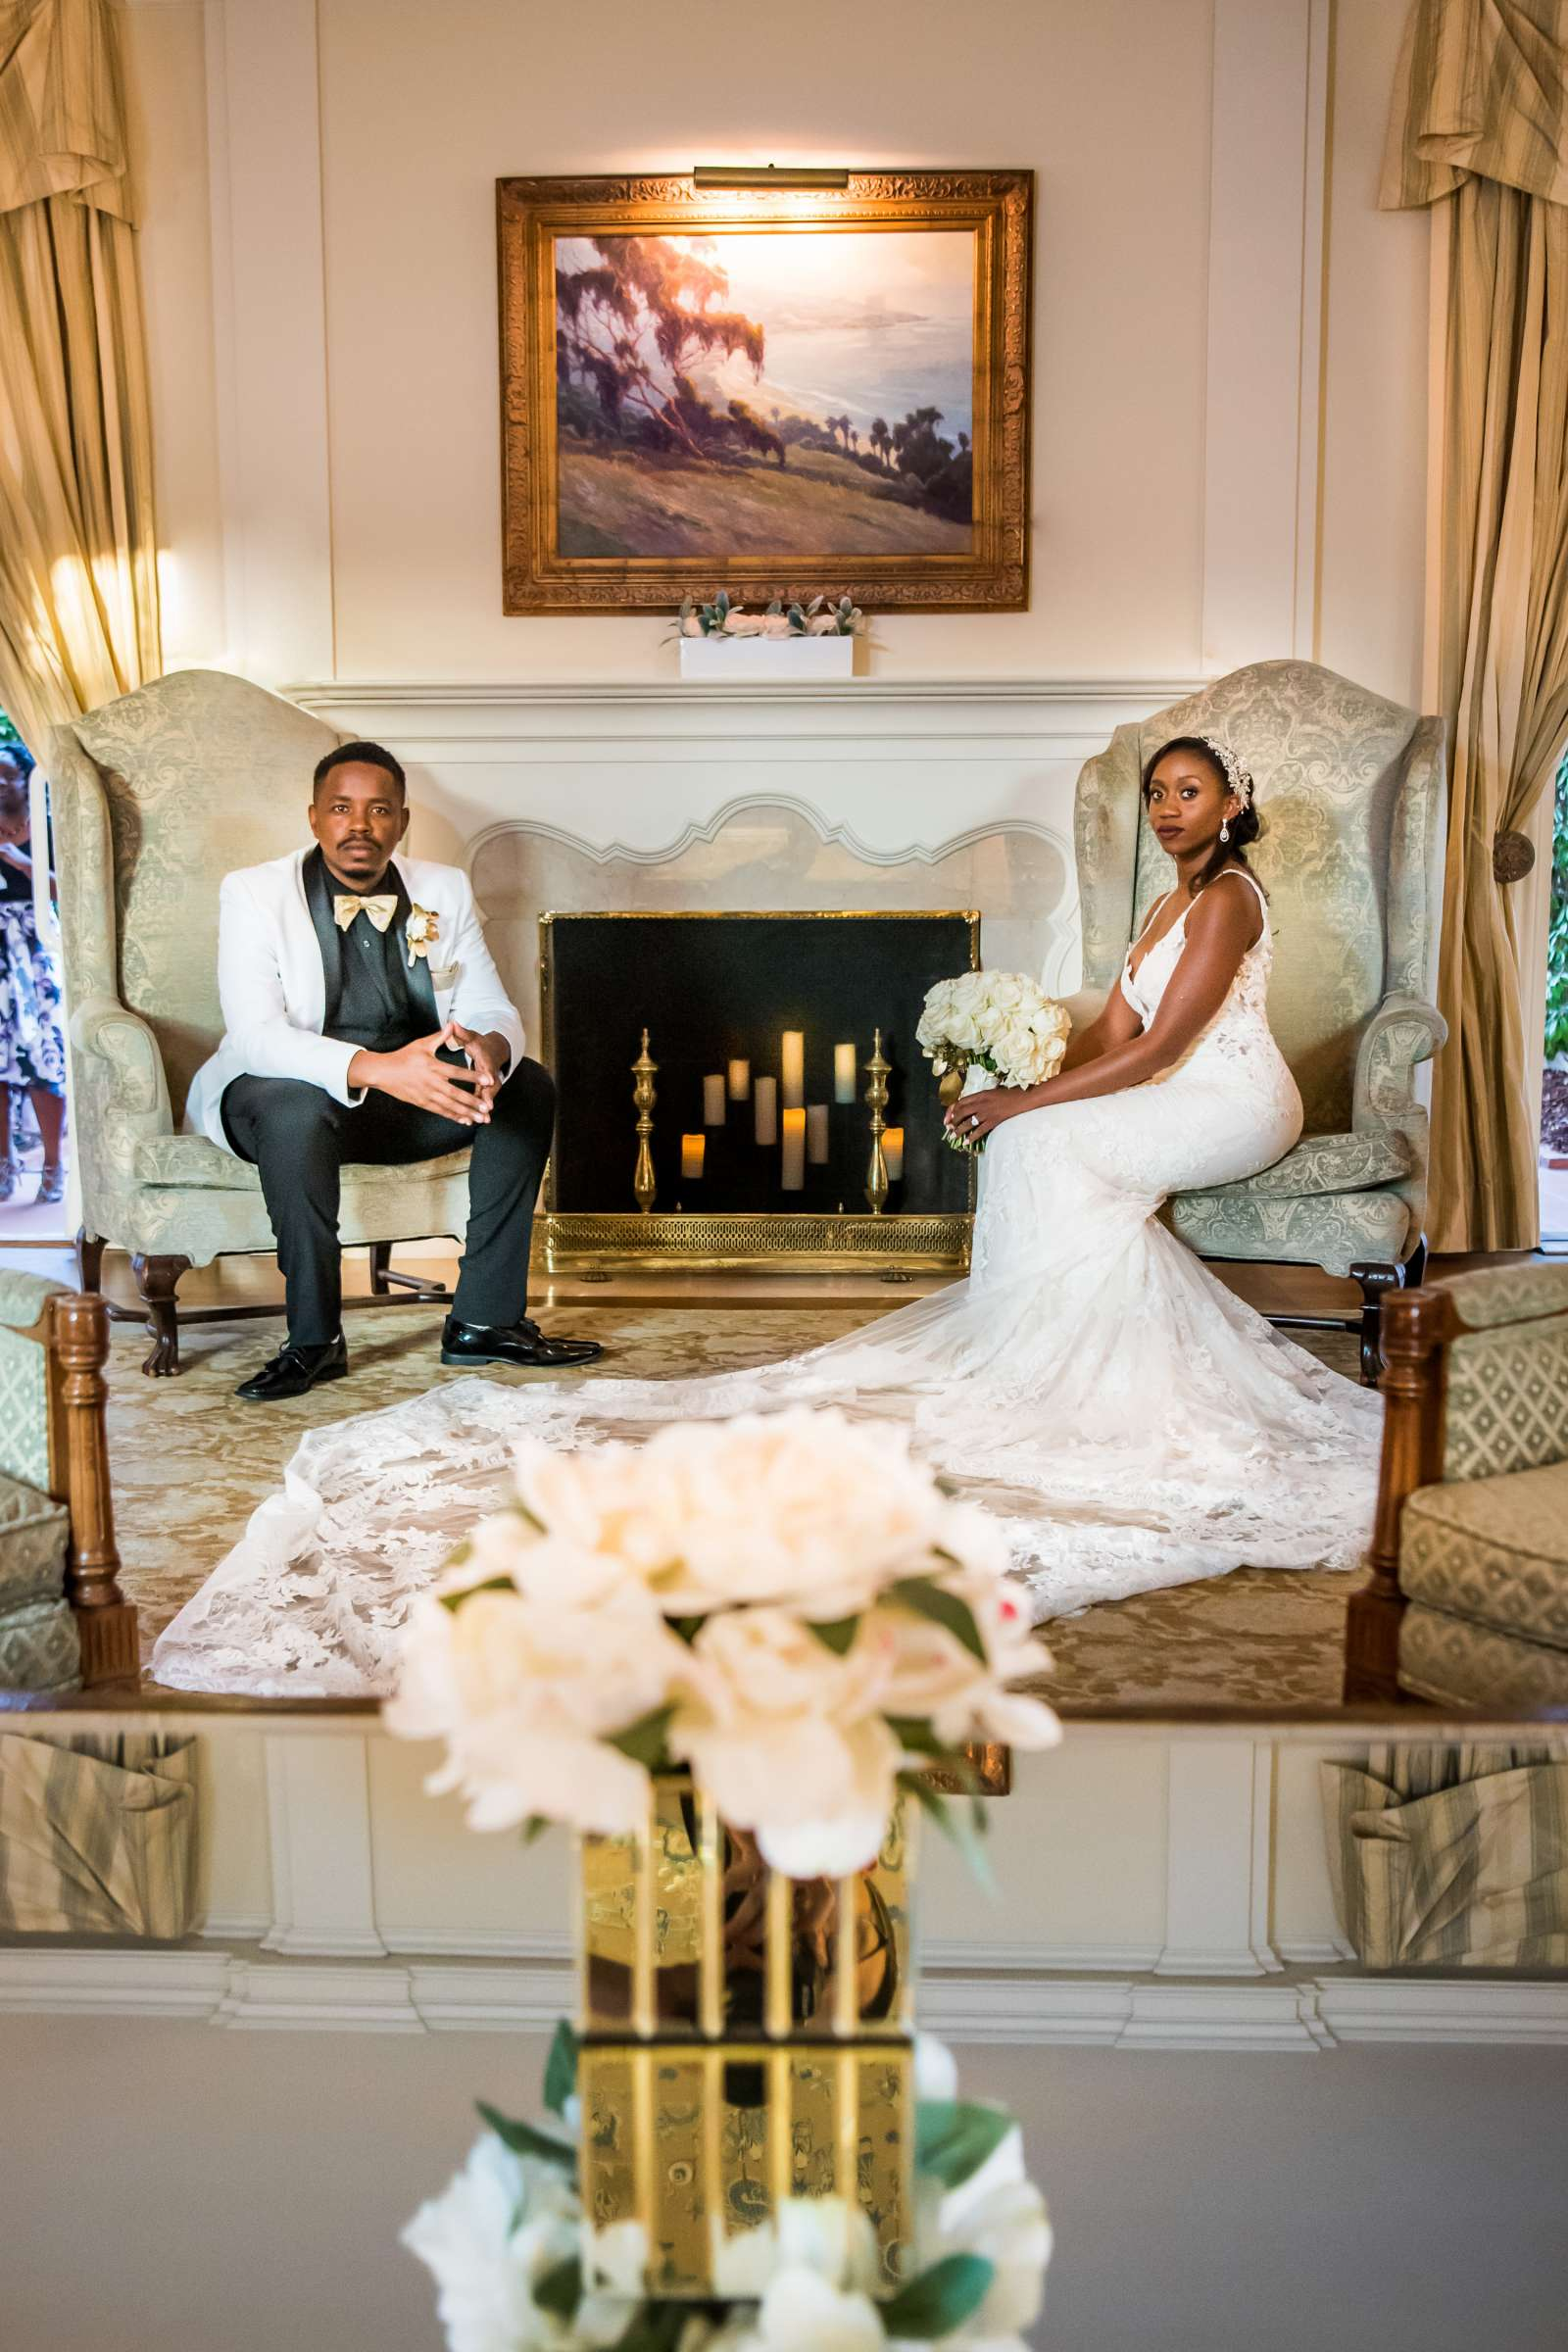 Darlington House Wedding coordinated by Back Patio Event Design, Charnel and Munyoki Wedding Photo #1 by True Photography